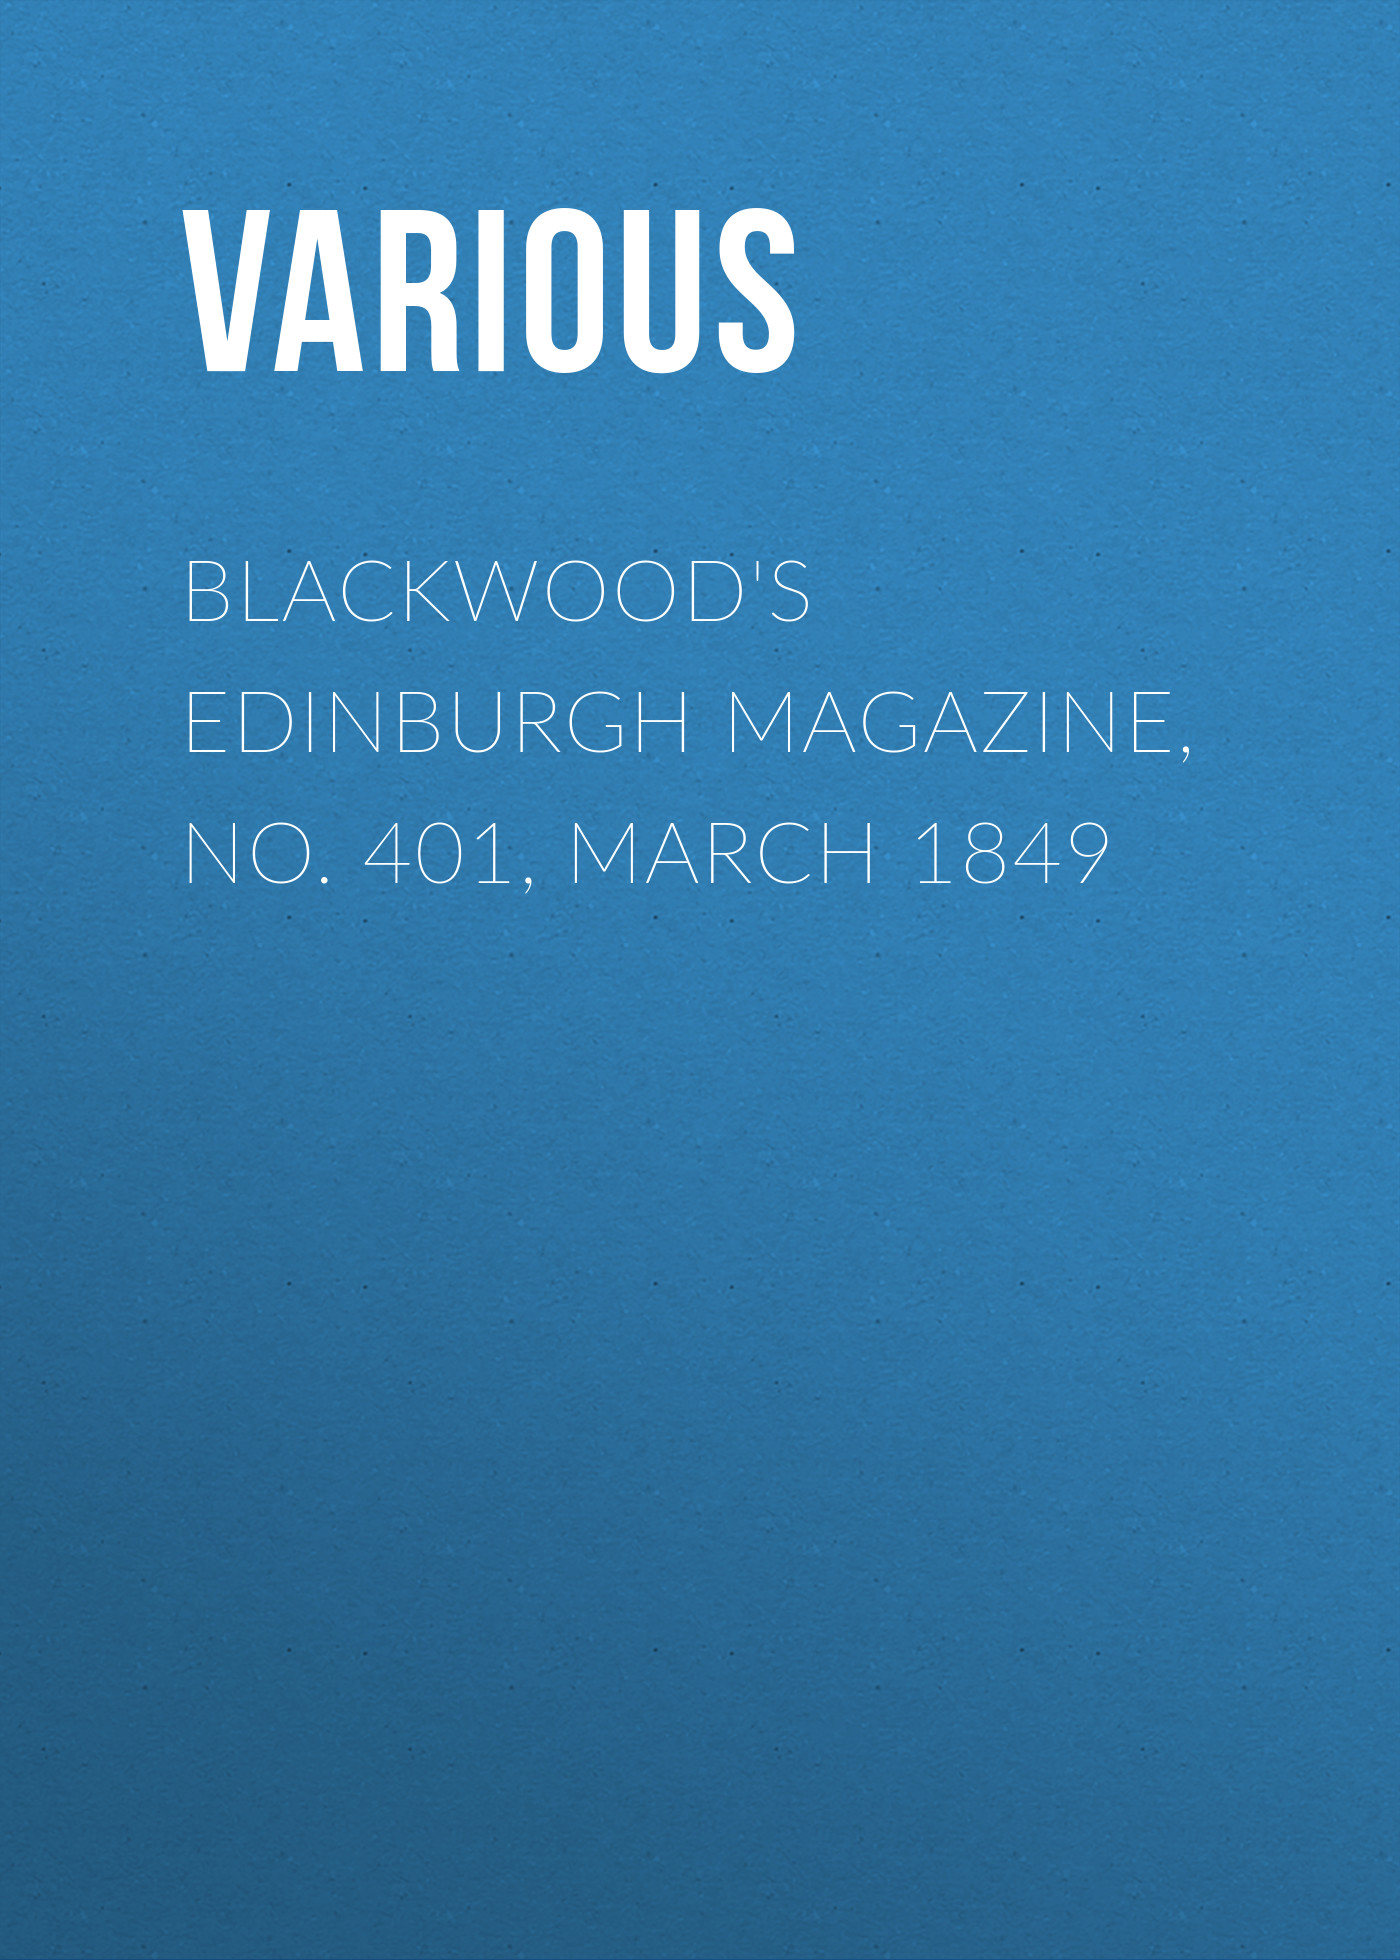 лучшая цена Various Blackwood's Edinburgh Magazine, No. 401, March 1849